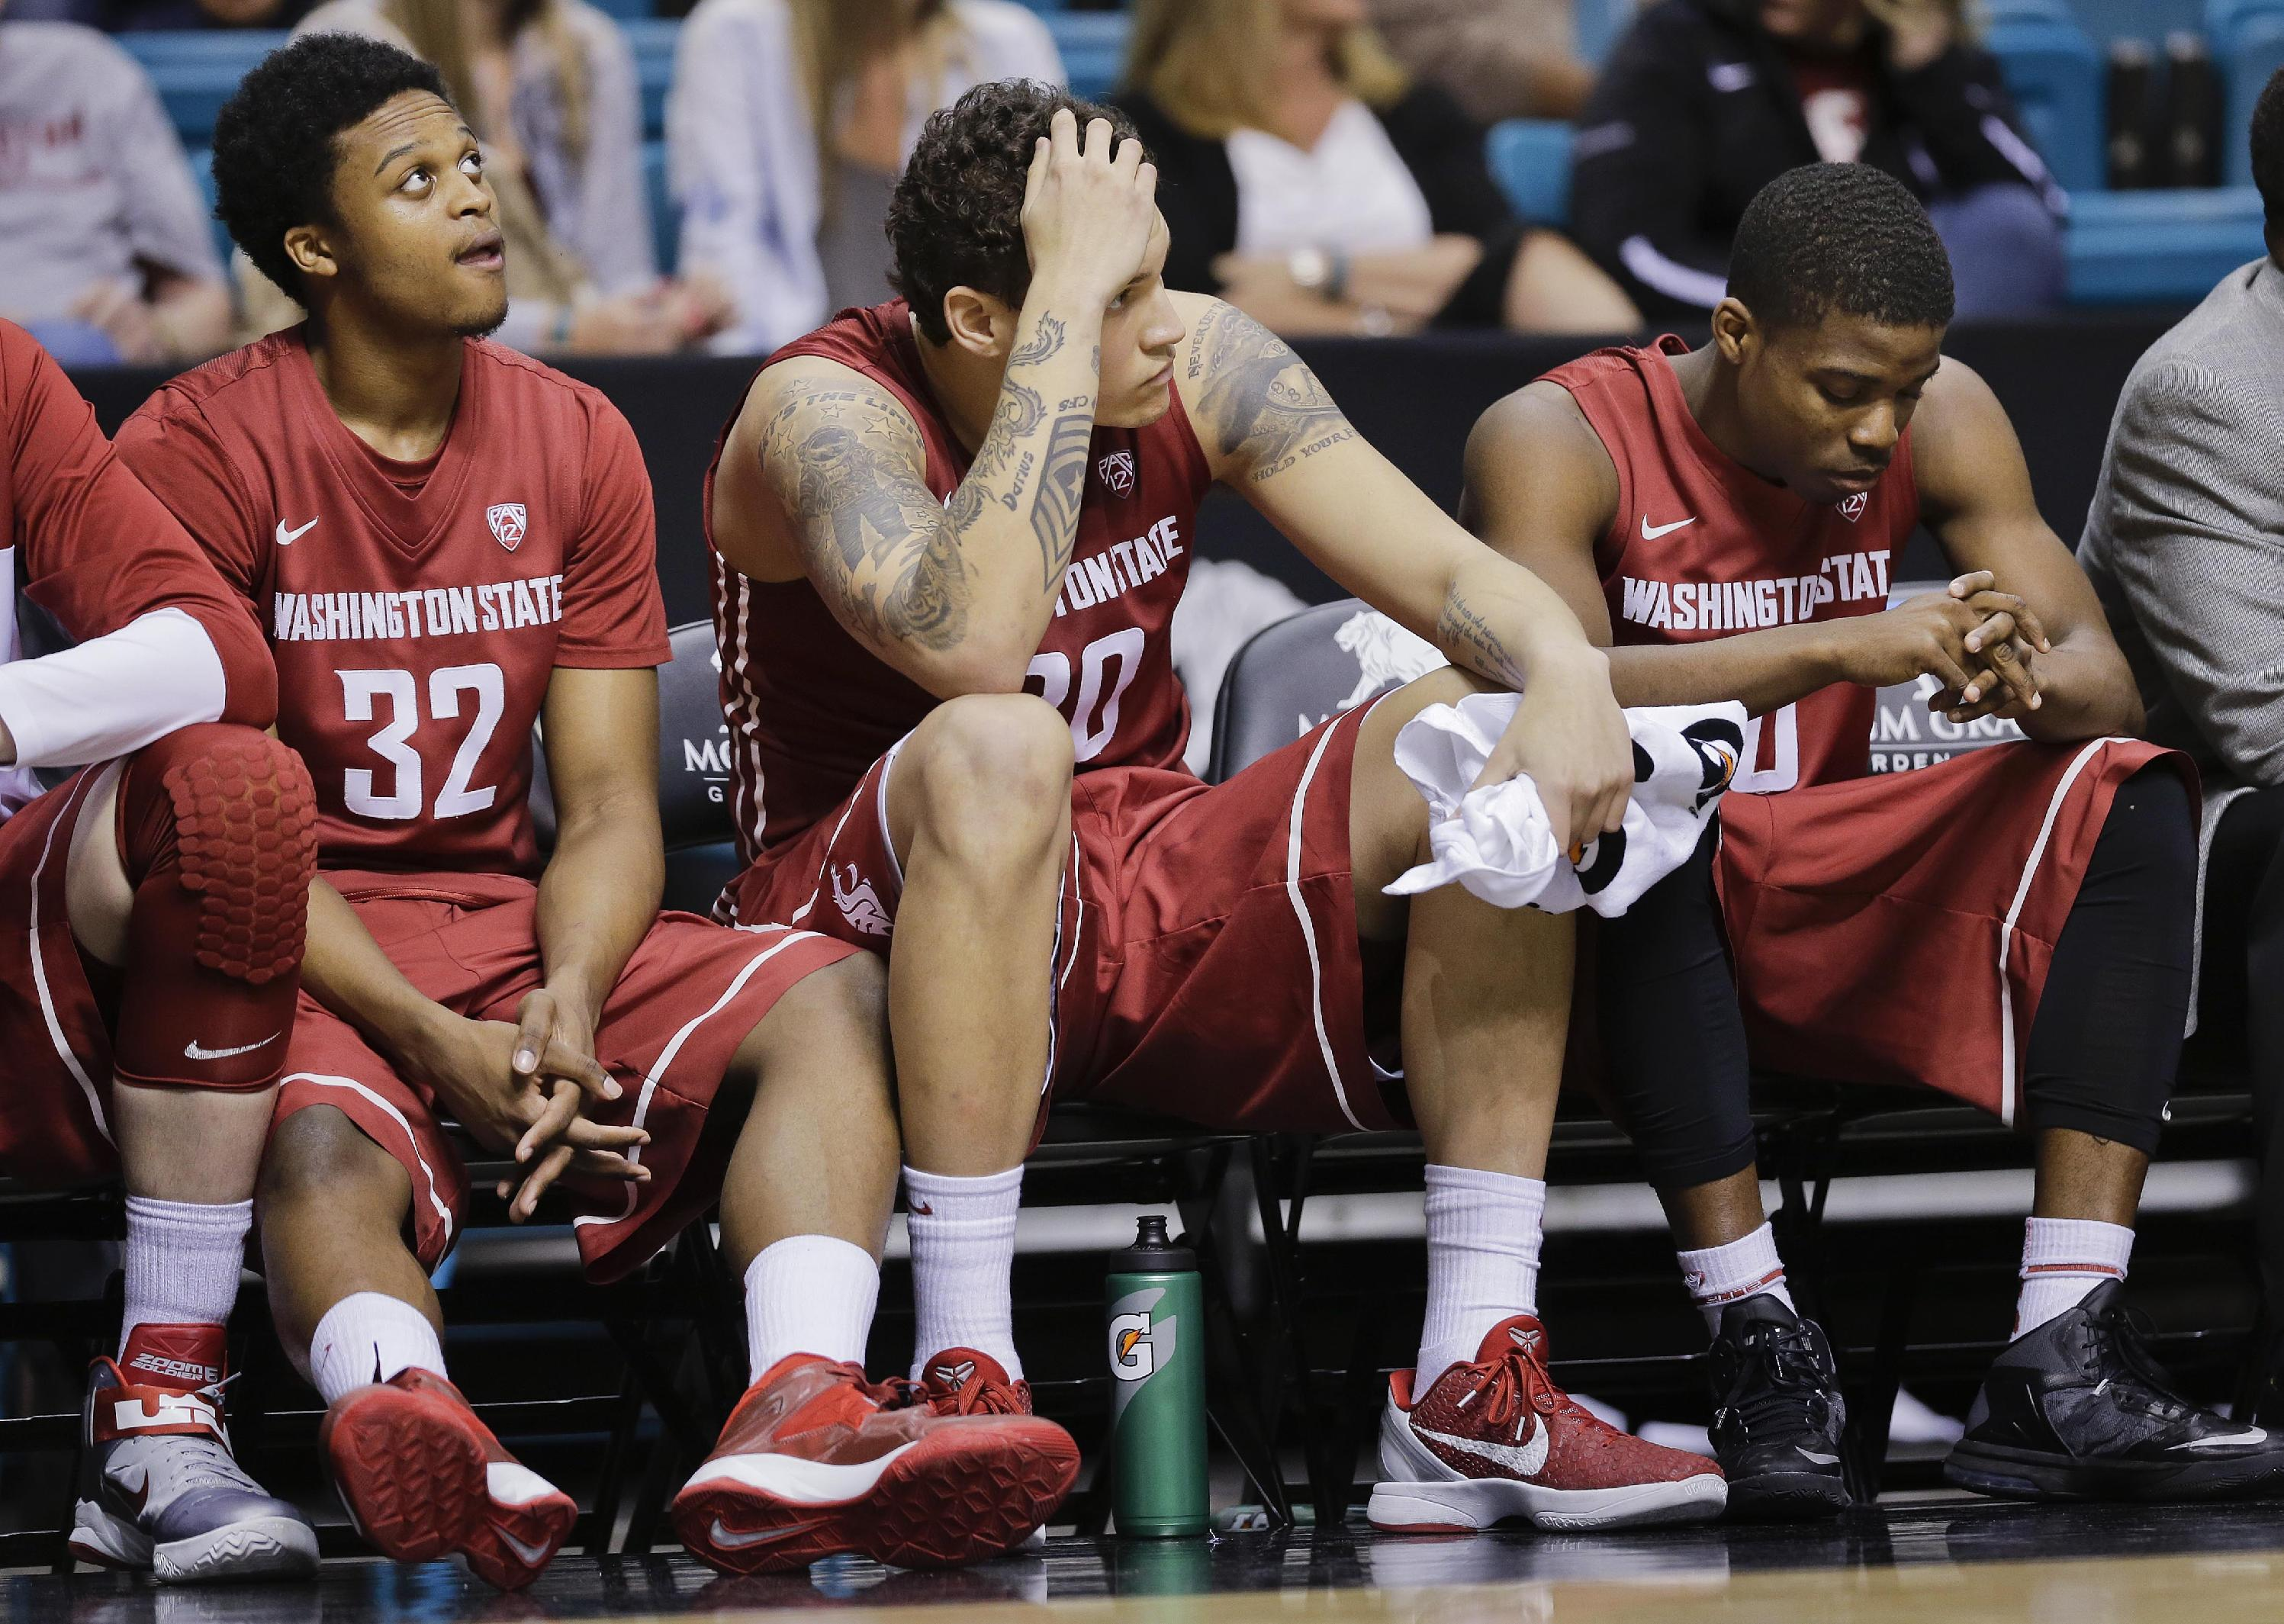 From left, Washington State's Que Johnson, Jordan Railey and Ike Iroegbu watch play from the bench late in the second half of an NCAA Pac-12 conference tournament college basketball game against Stanford, Wednesday, March 12, 2014, in Las Vegas. Stanford won 74-63